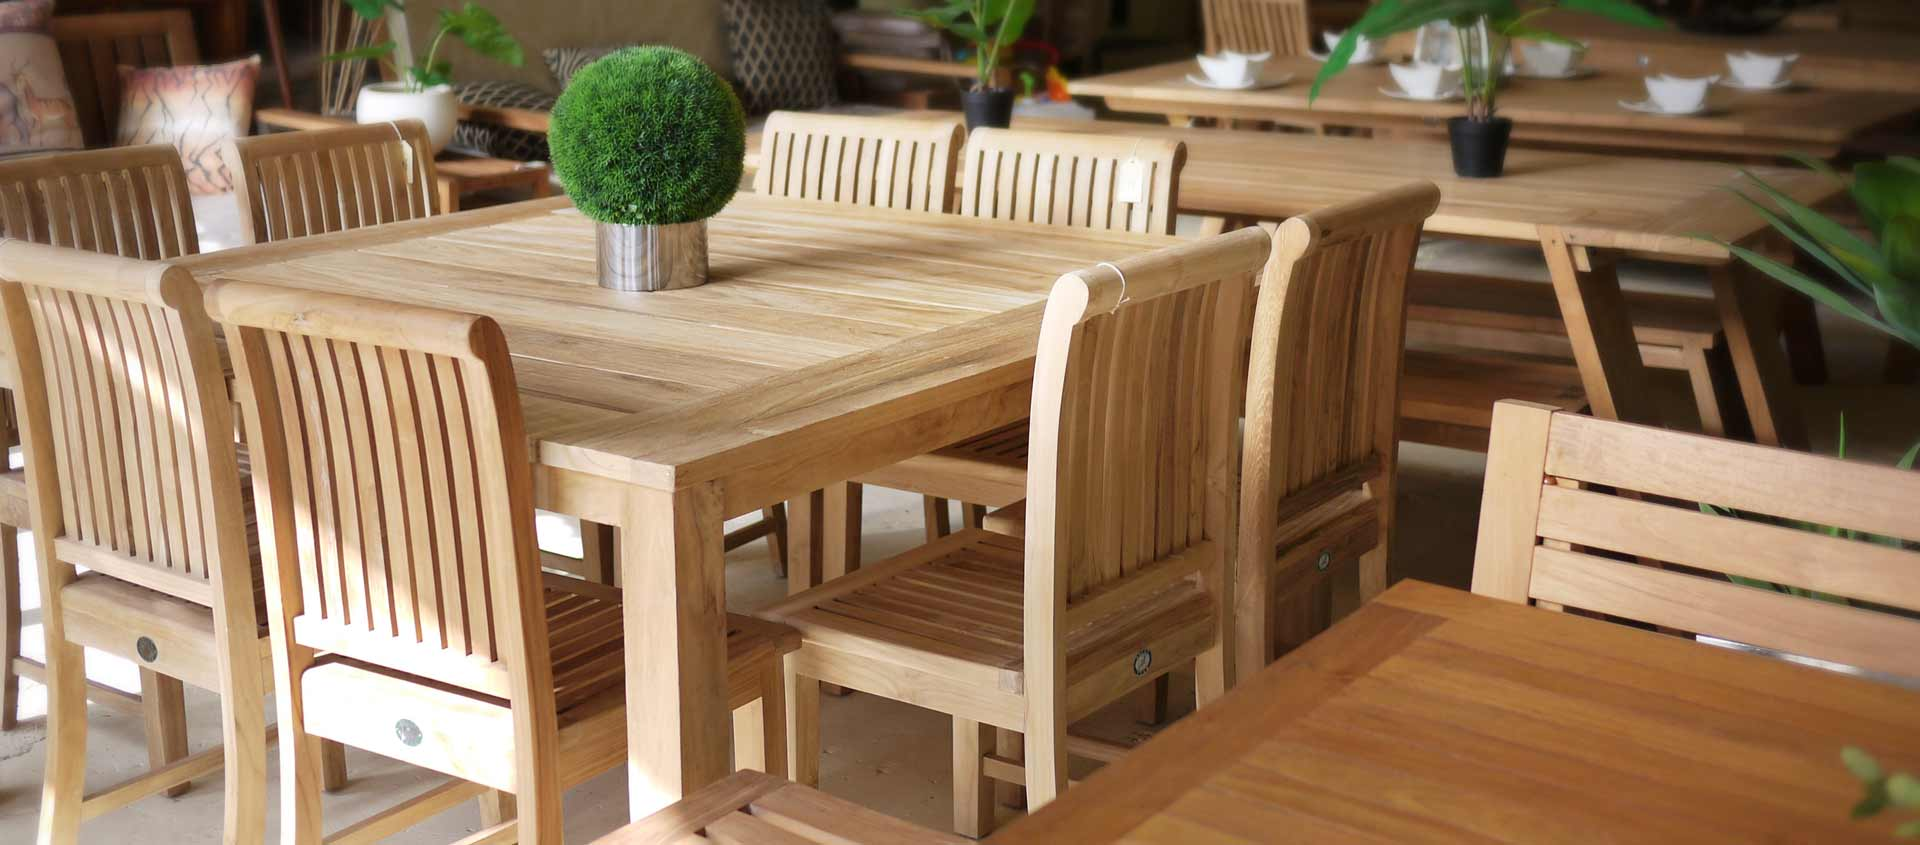 From 40 to 60 off selected beautiful teak items